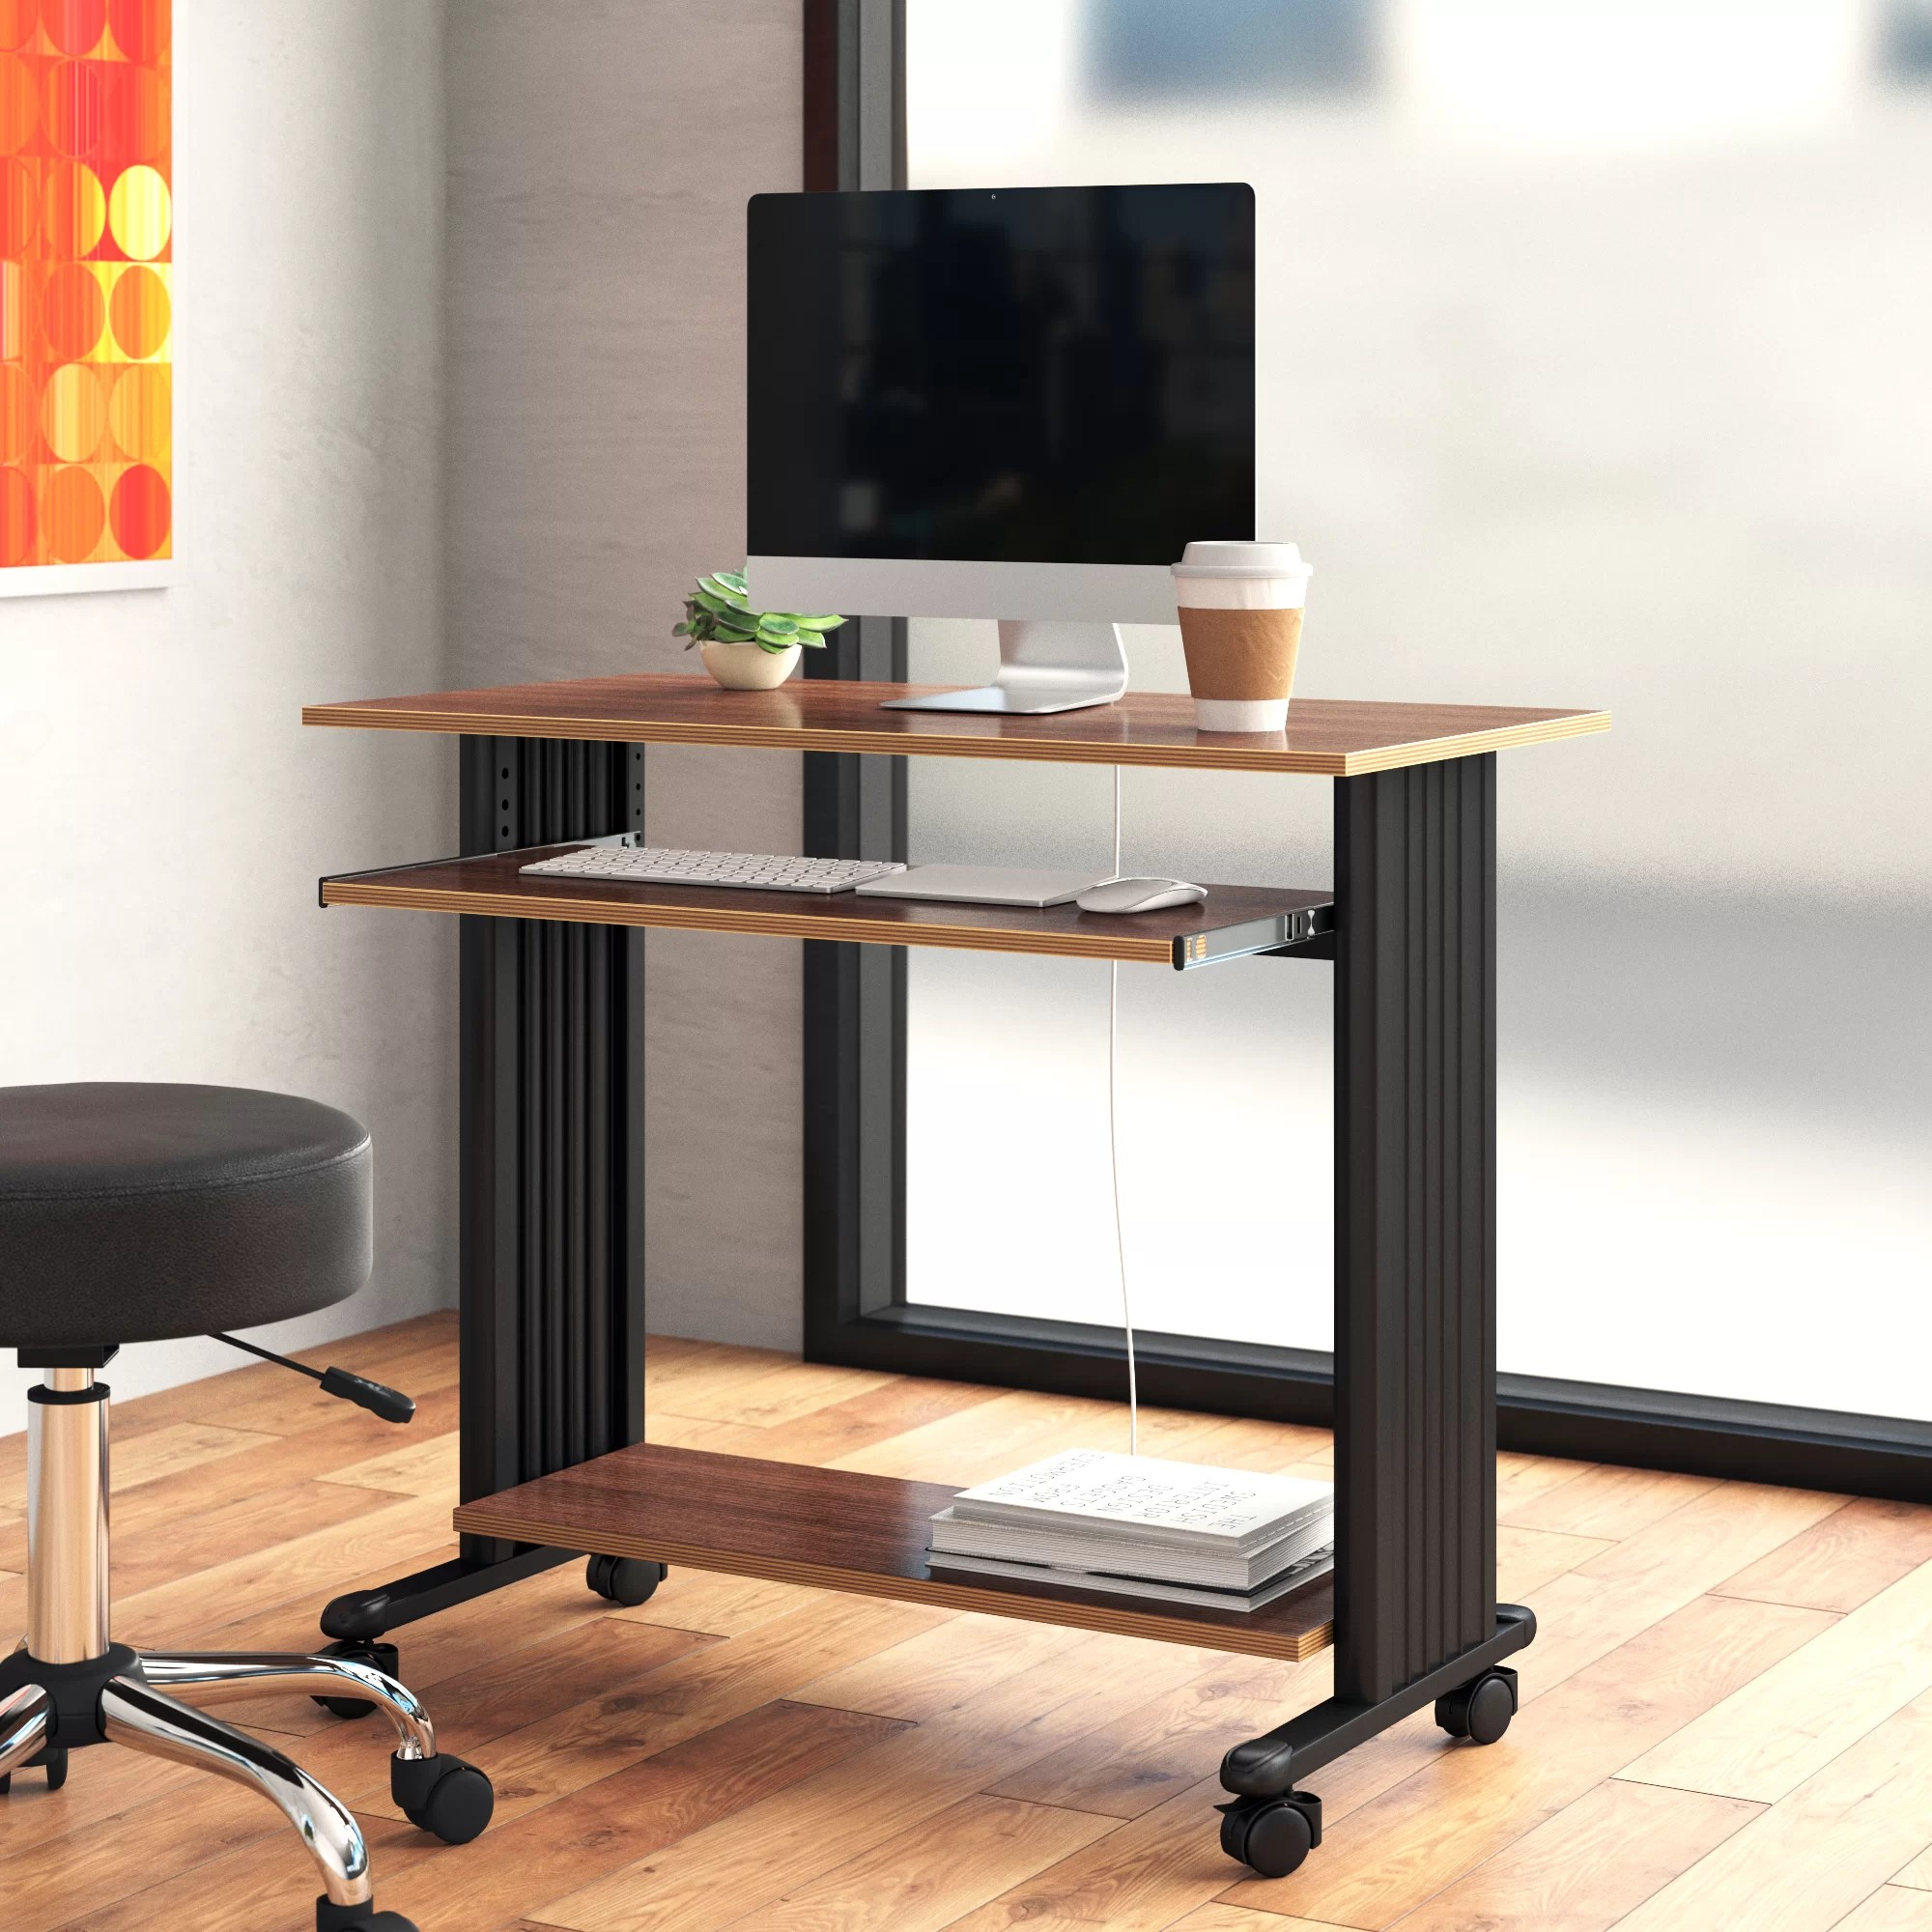 Symple Stuff Desks You Ll Love In 2021 Wayfair